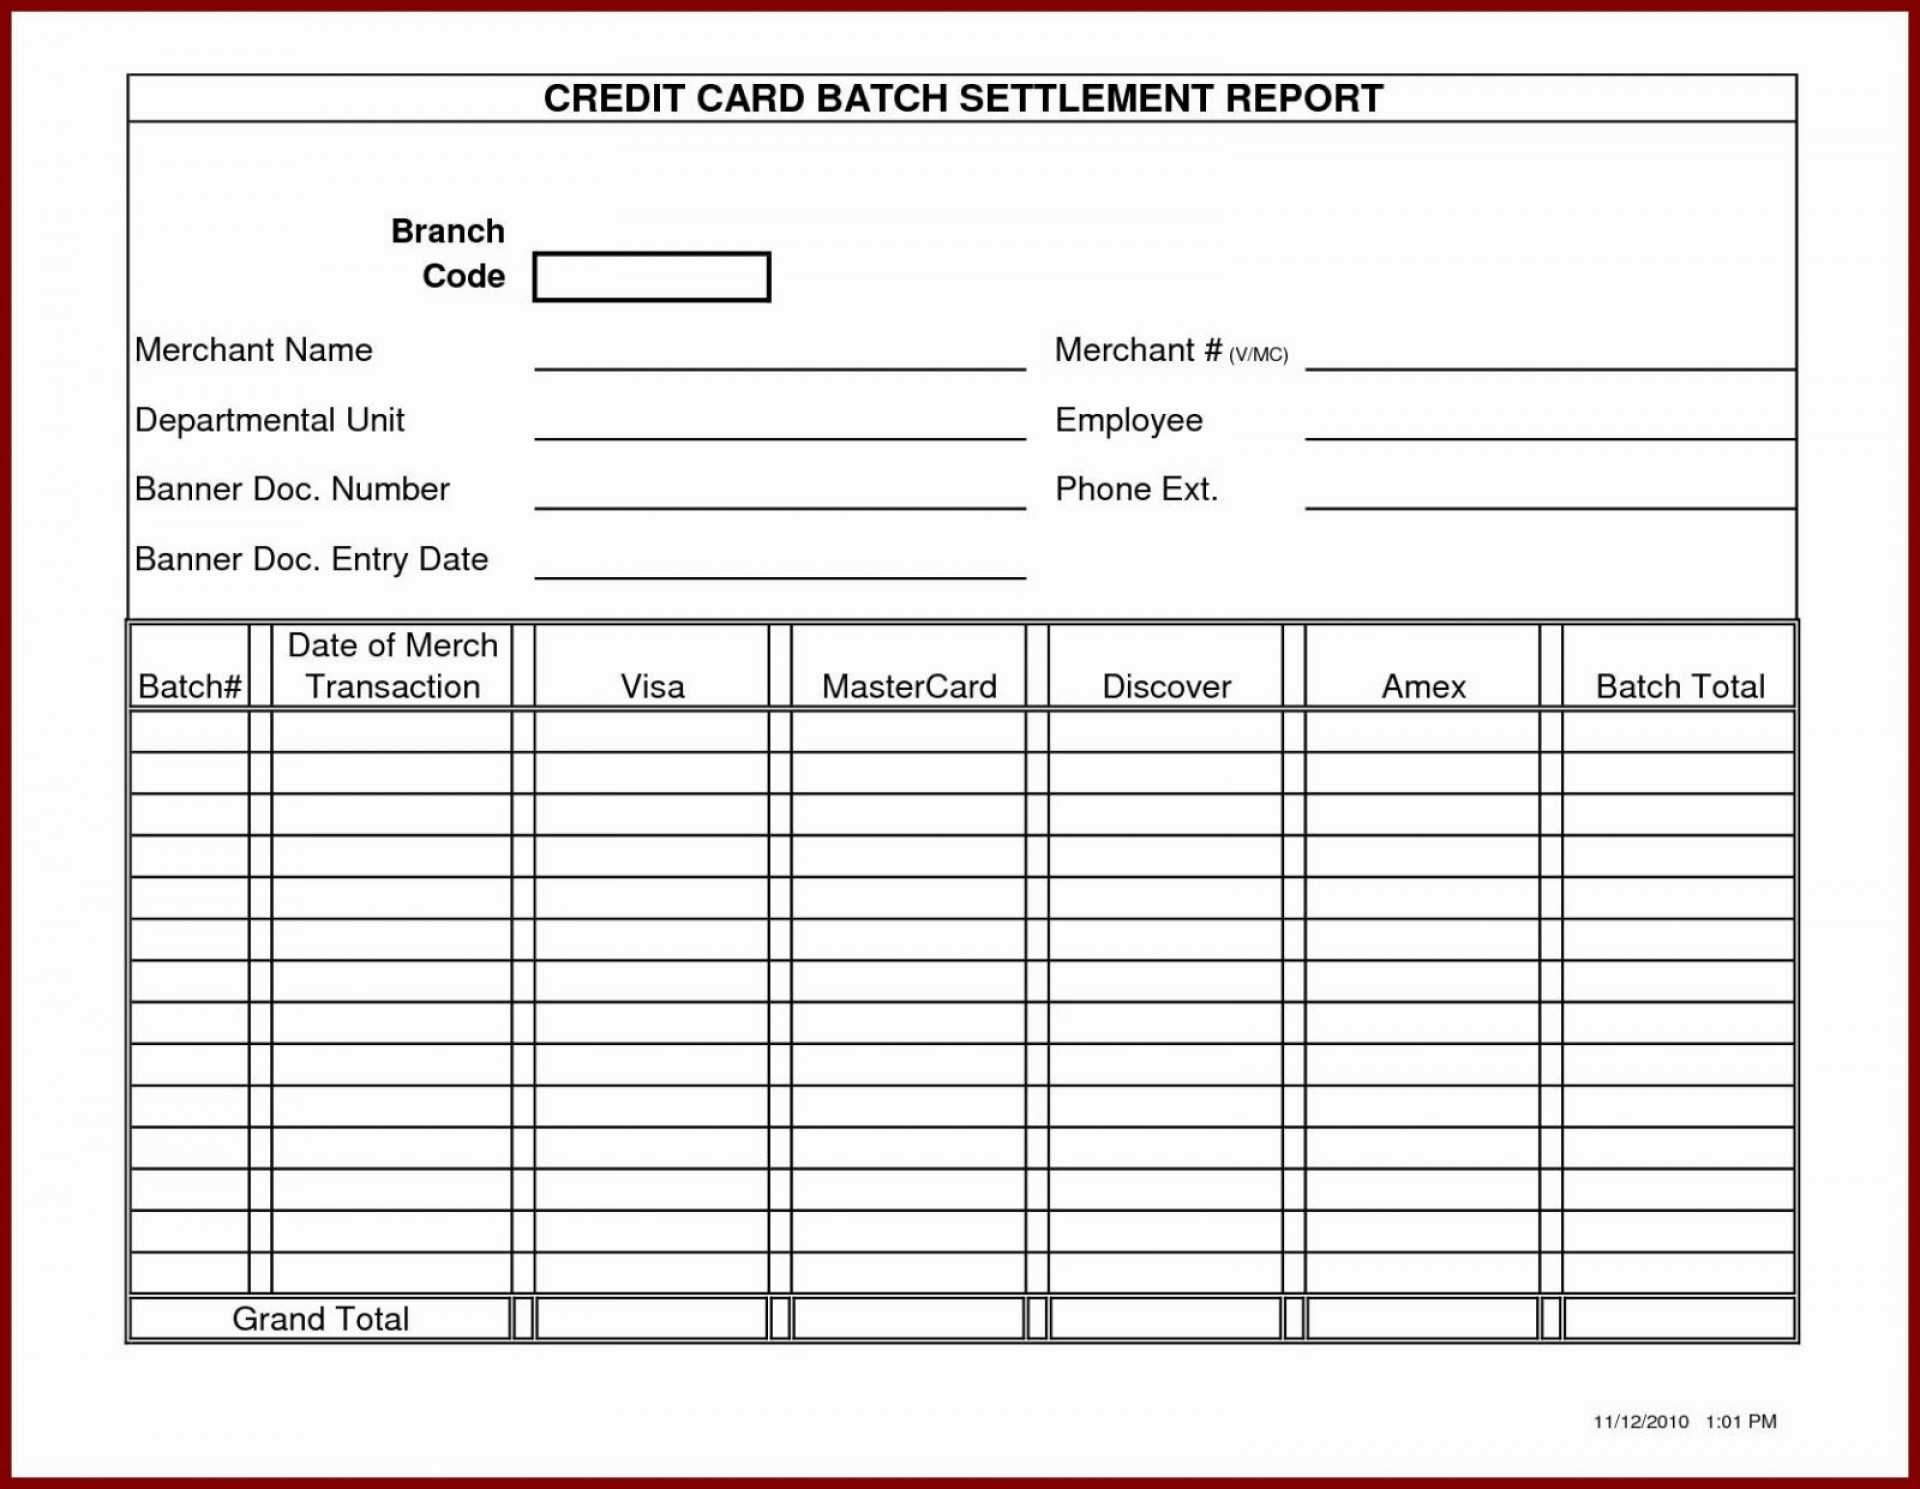 010 Free Report Card Template Clever Homeschool High School for Fake Report Card Template